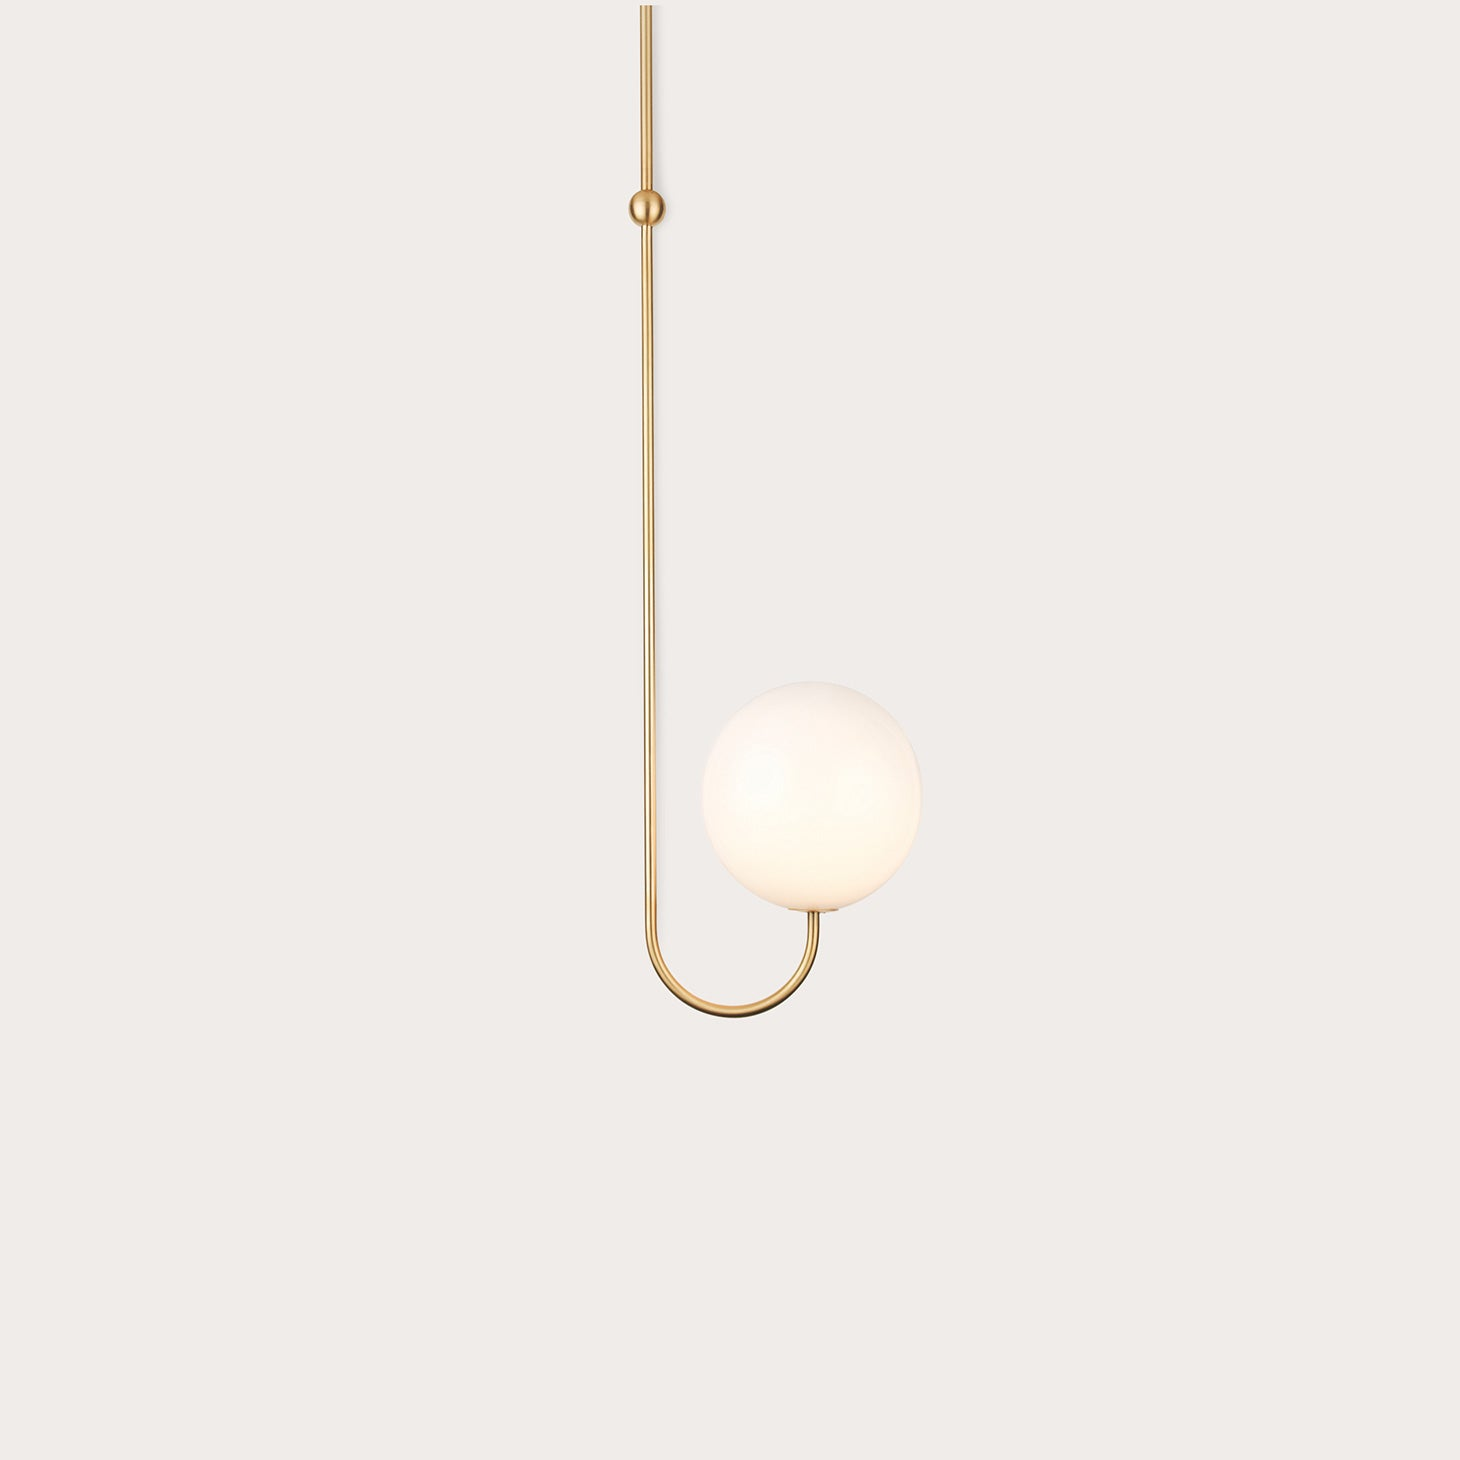 Single Angle Lighting Michael Anastassiades Designer Furniture Sku: 717-100-10066